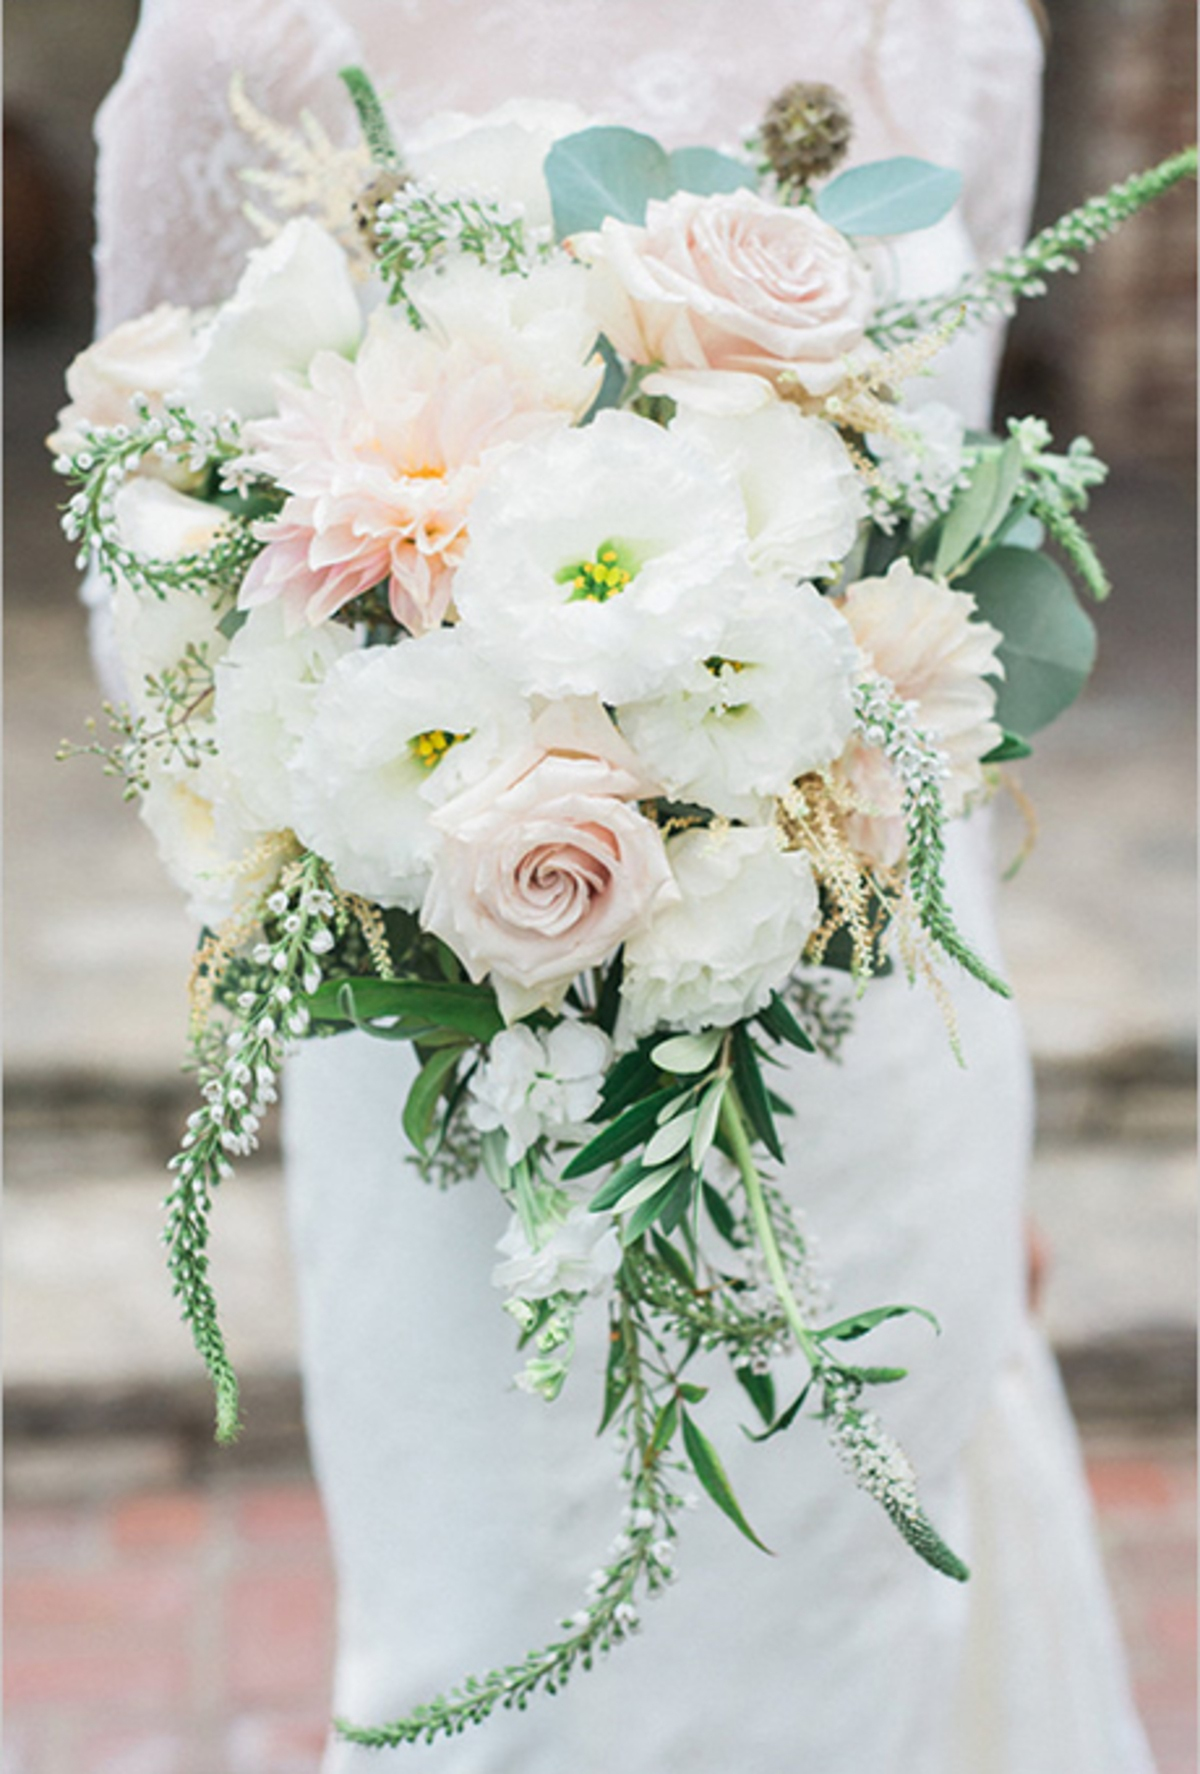 Herb-Wedding-Bouquets-Anya-Kernes